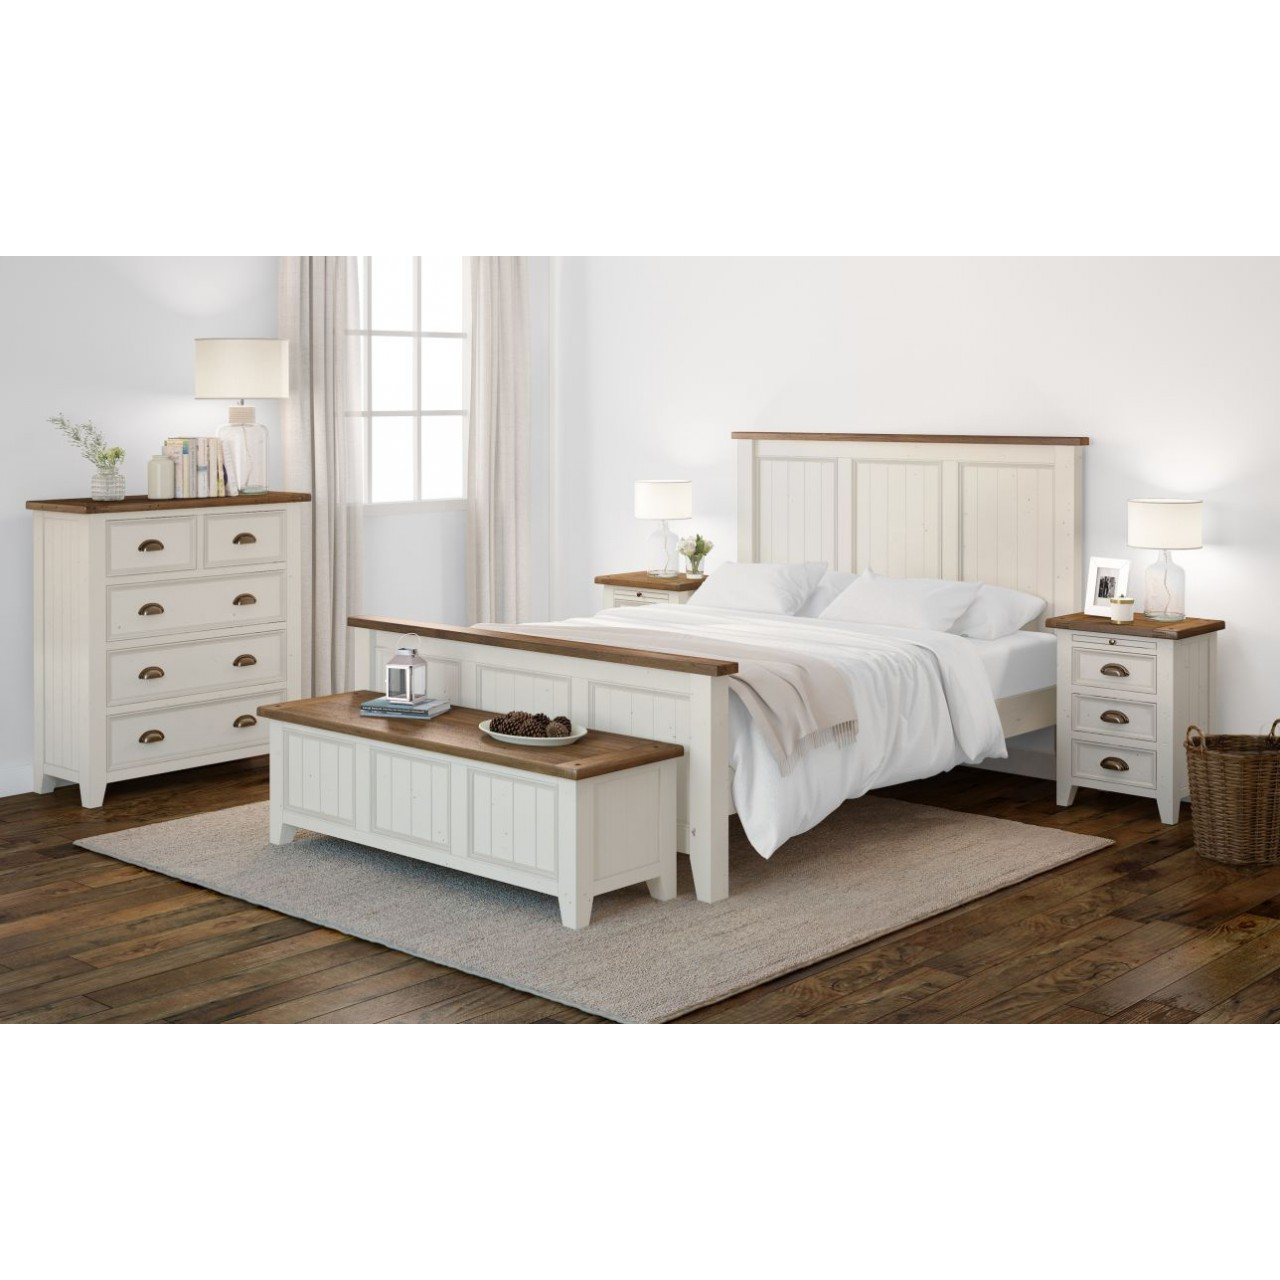 17 Home Furniture For Sale Sydney Tigress Direct Furniture And Homewares April Identiti